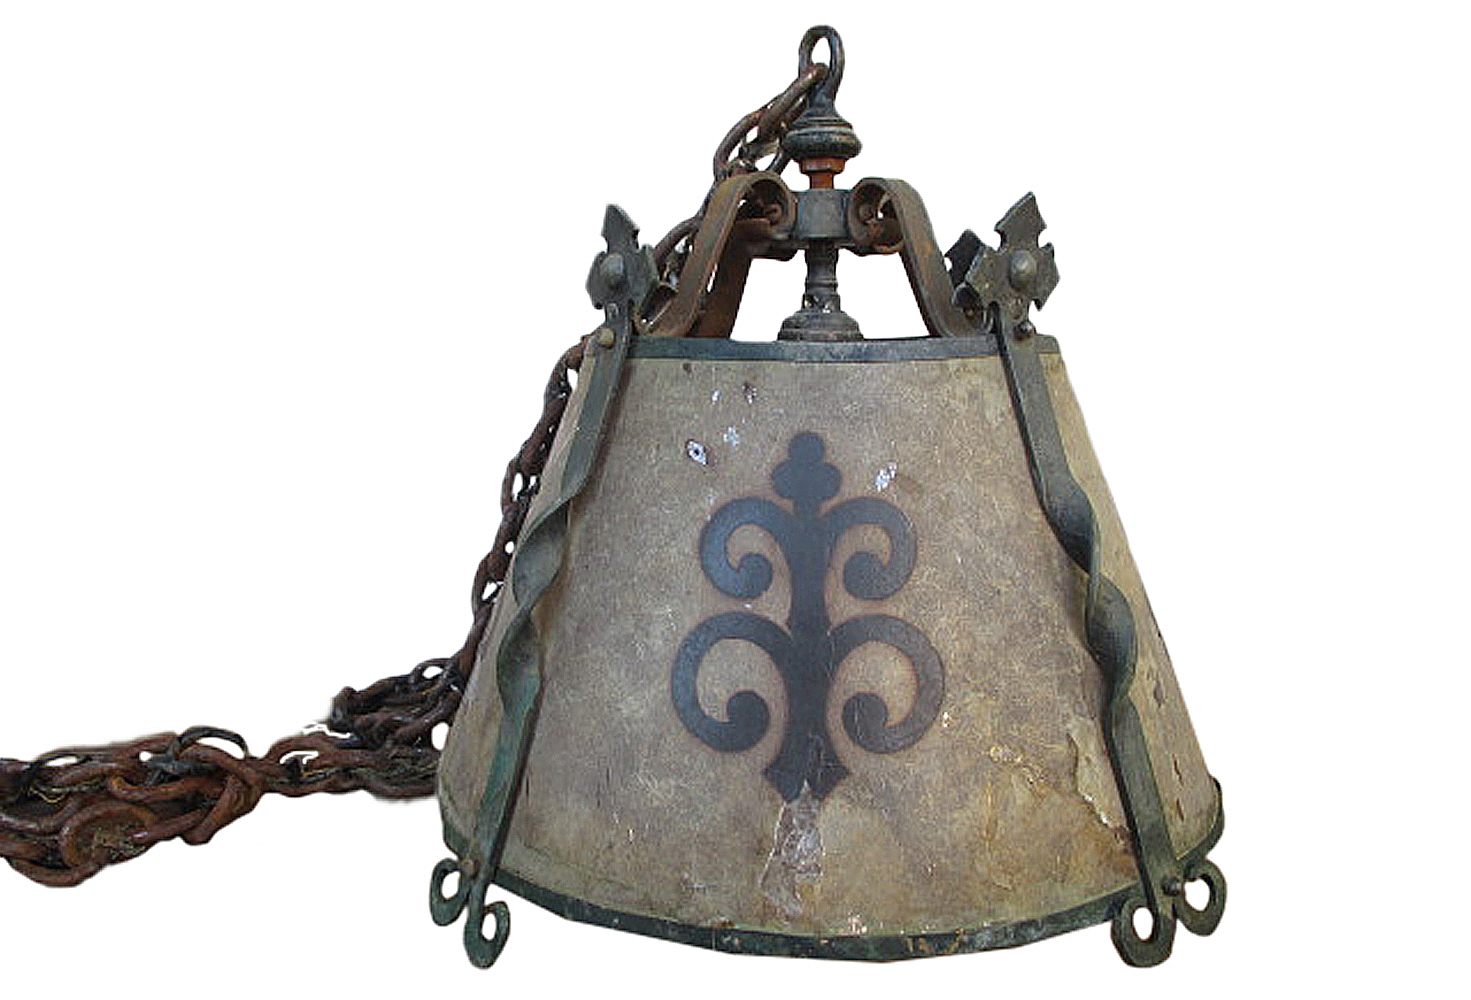 Antique french fleur de lis forged iron chandelier omero home antique french fleur de lis forged iron chandelier mozeypictures Image collections